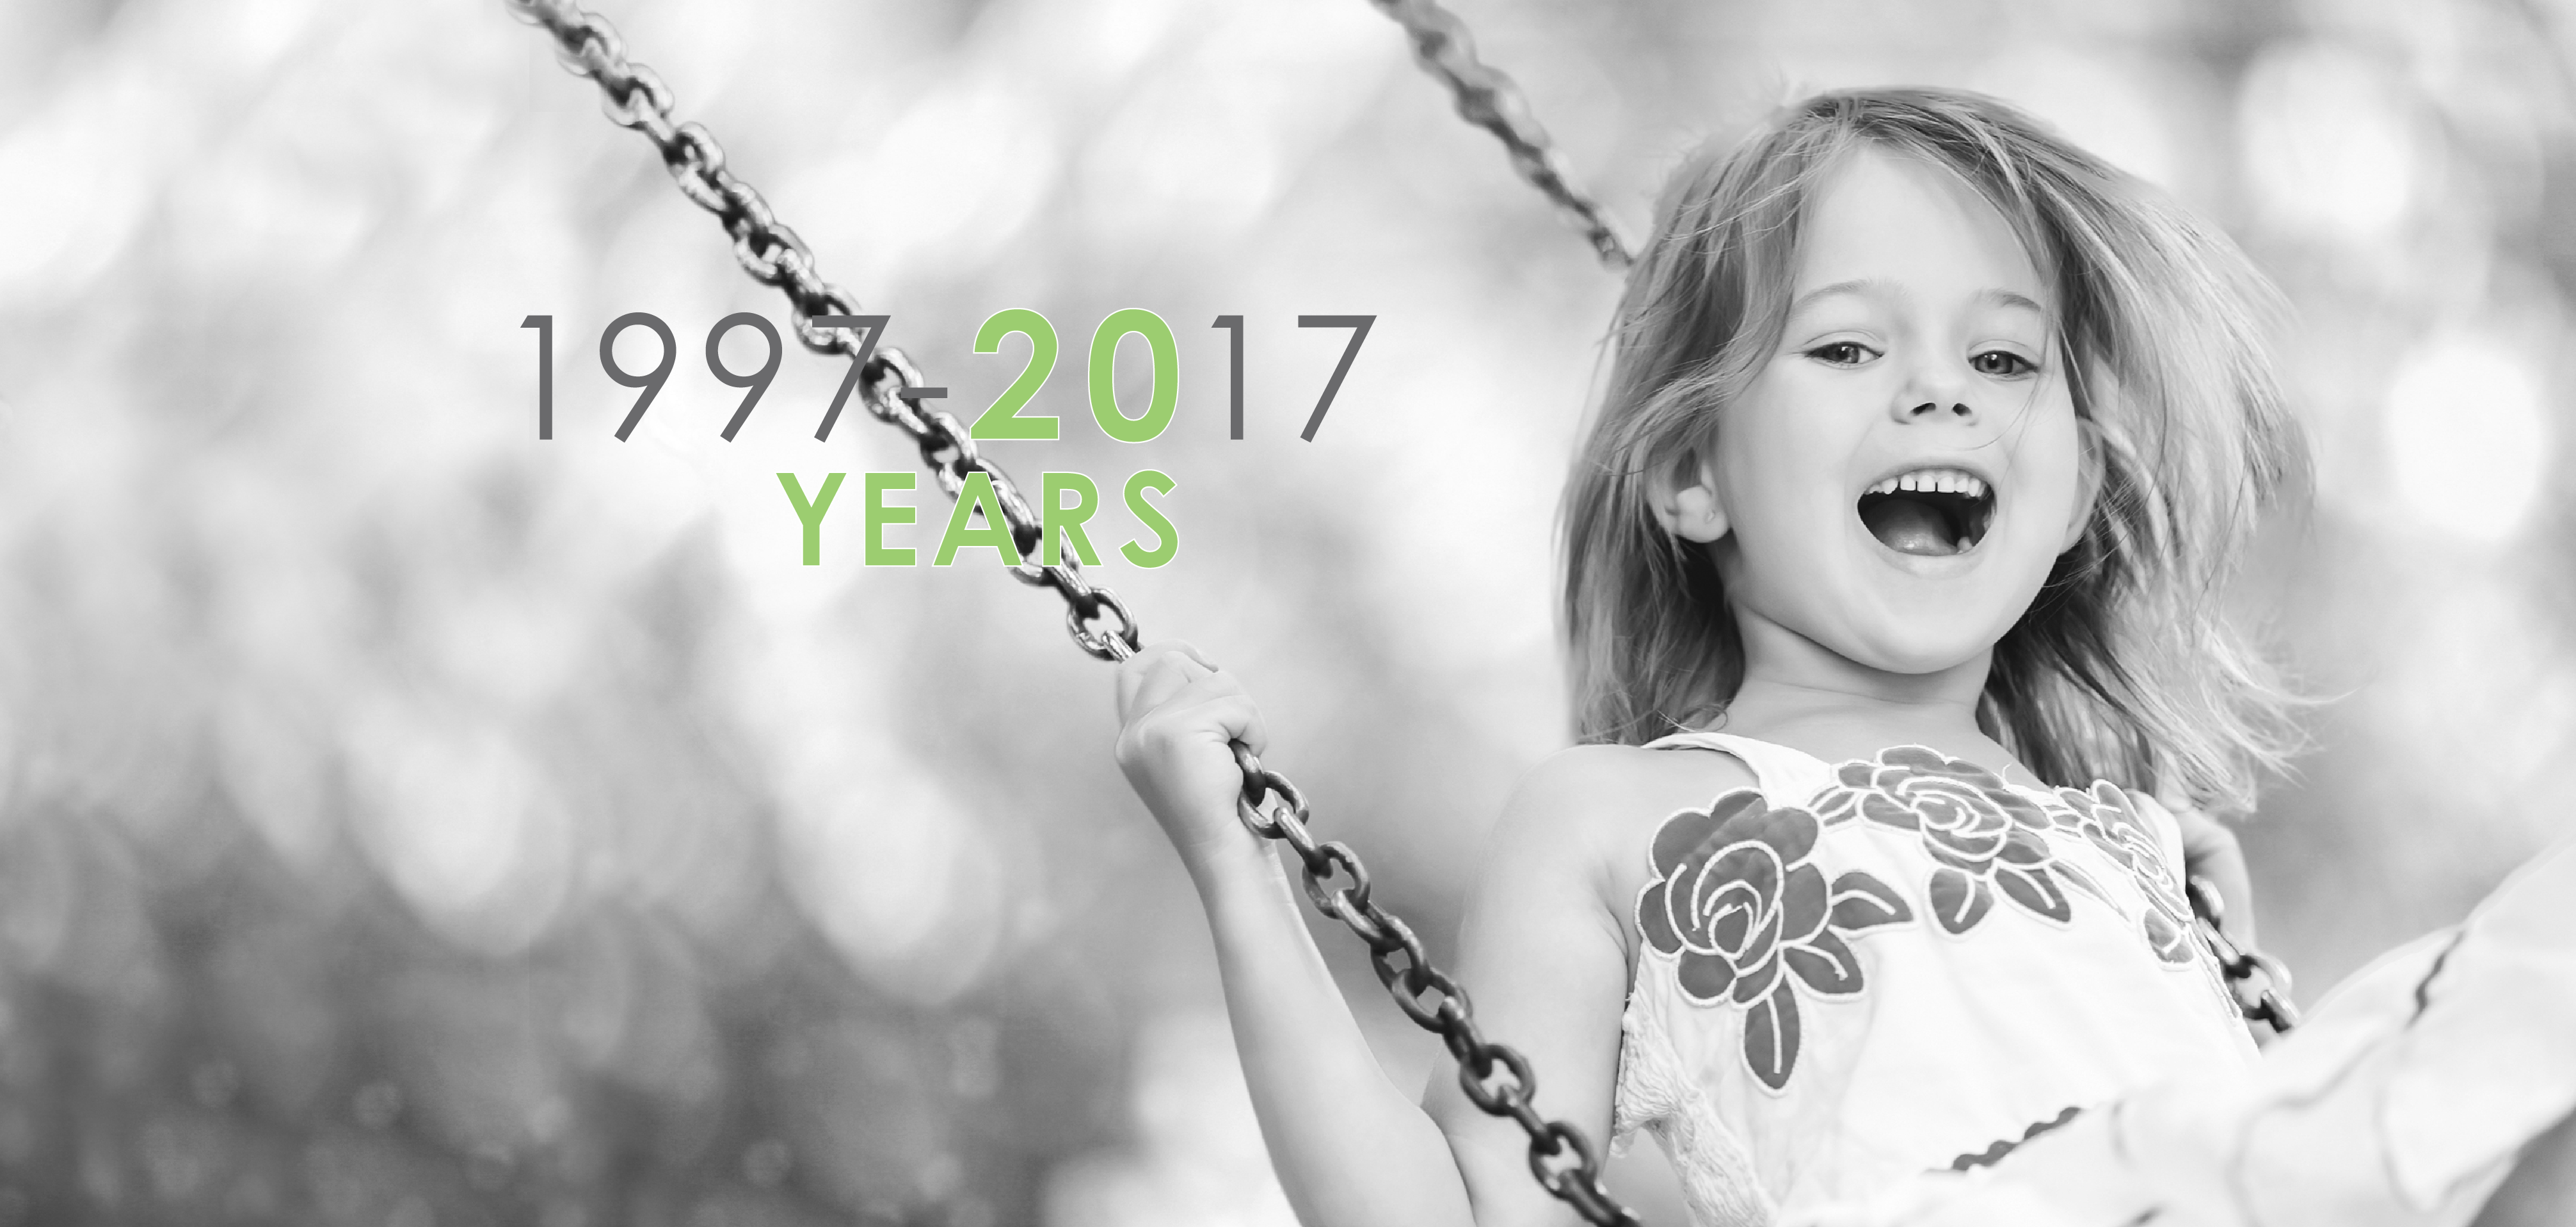 20 years of creating positive change for children.